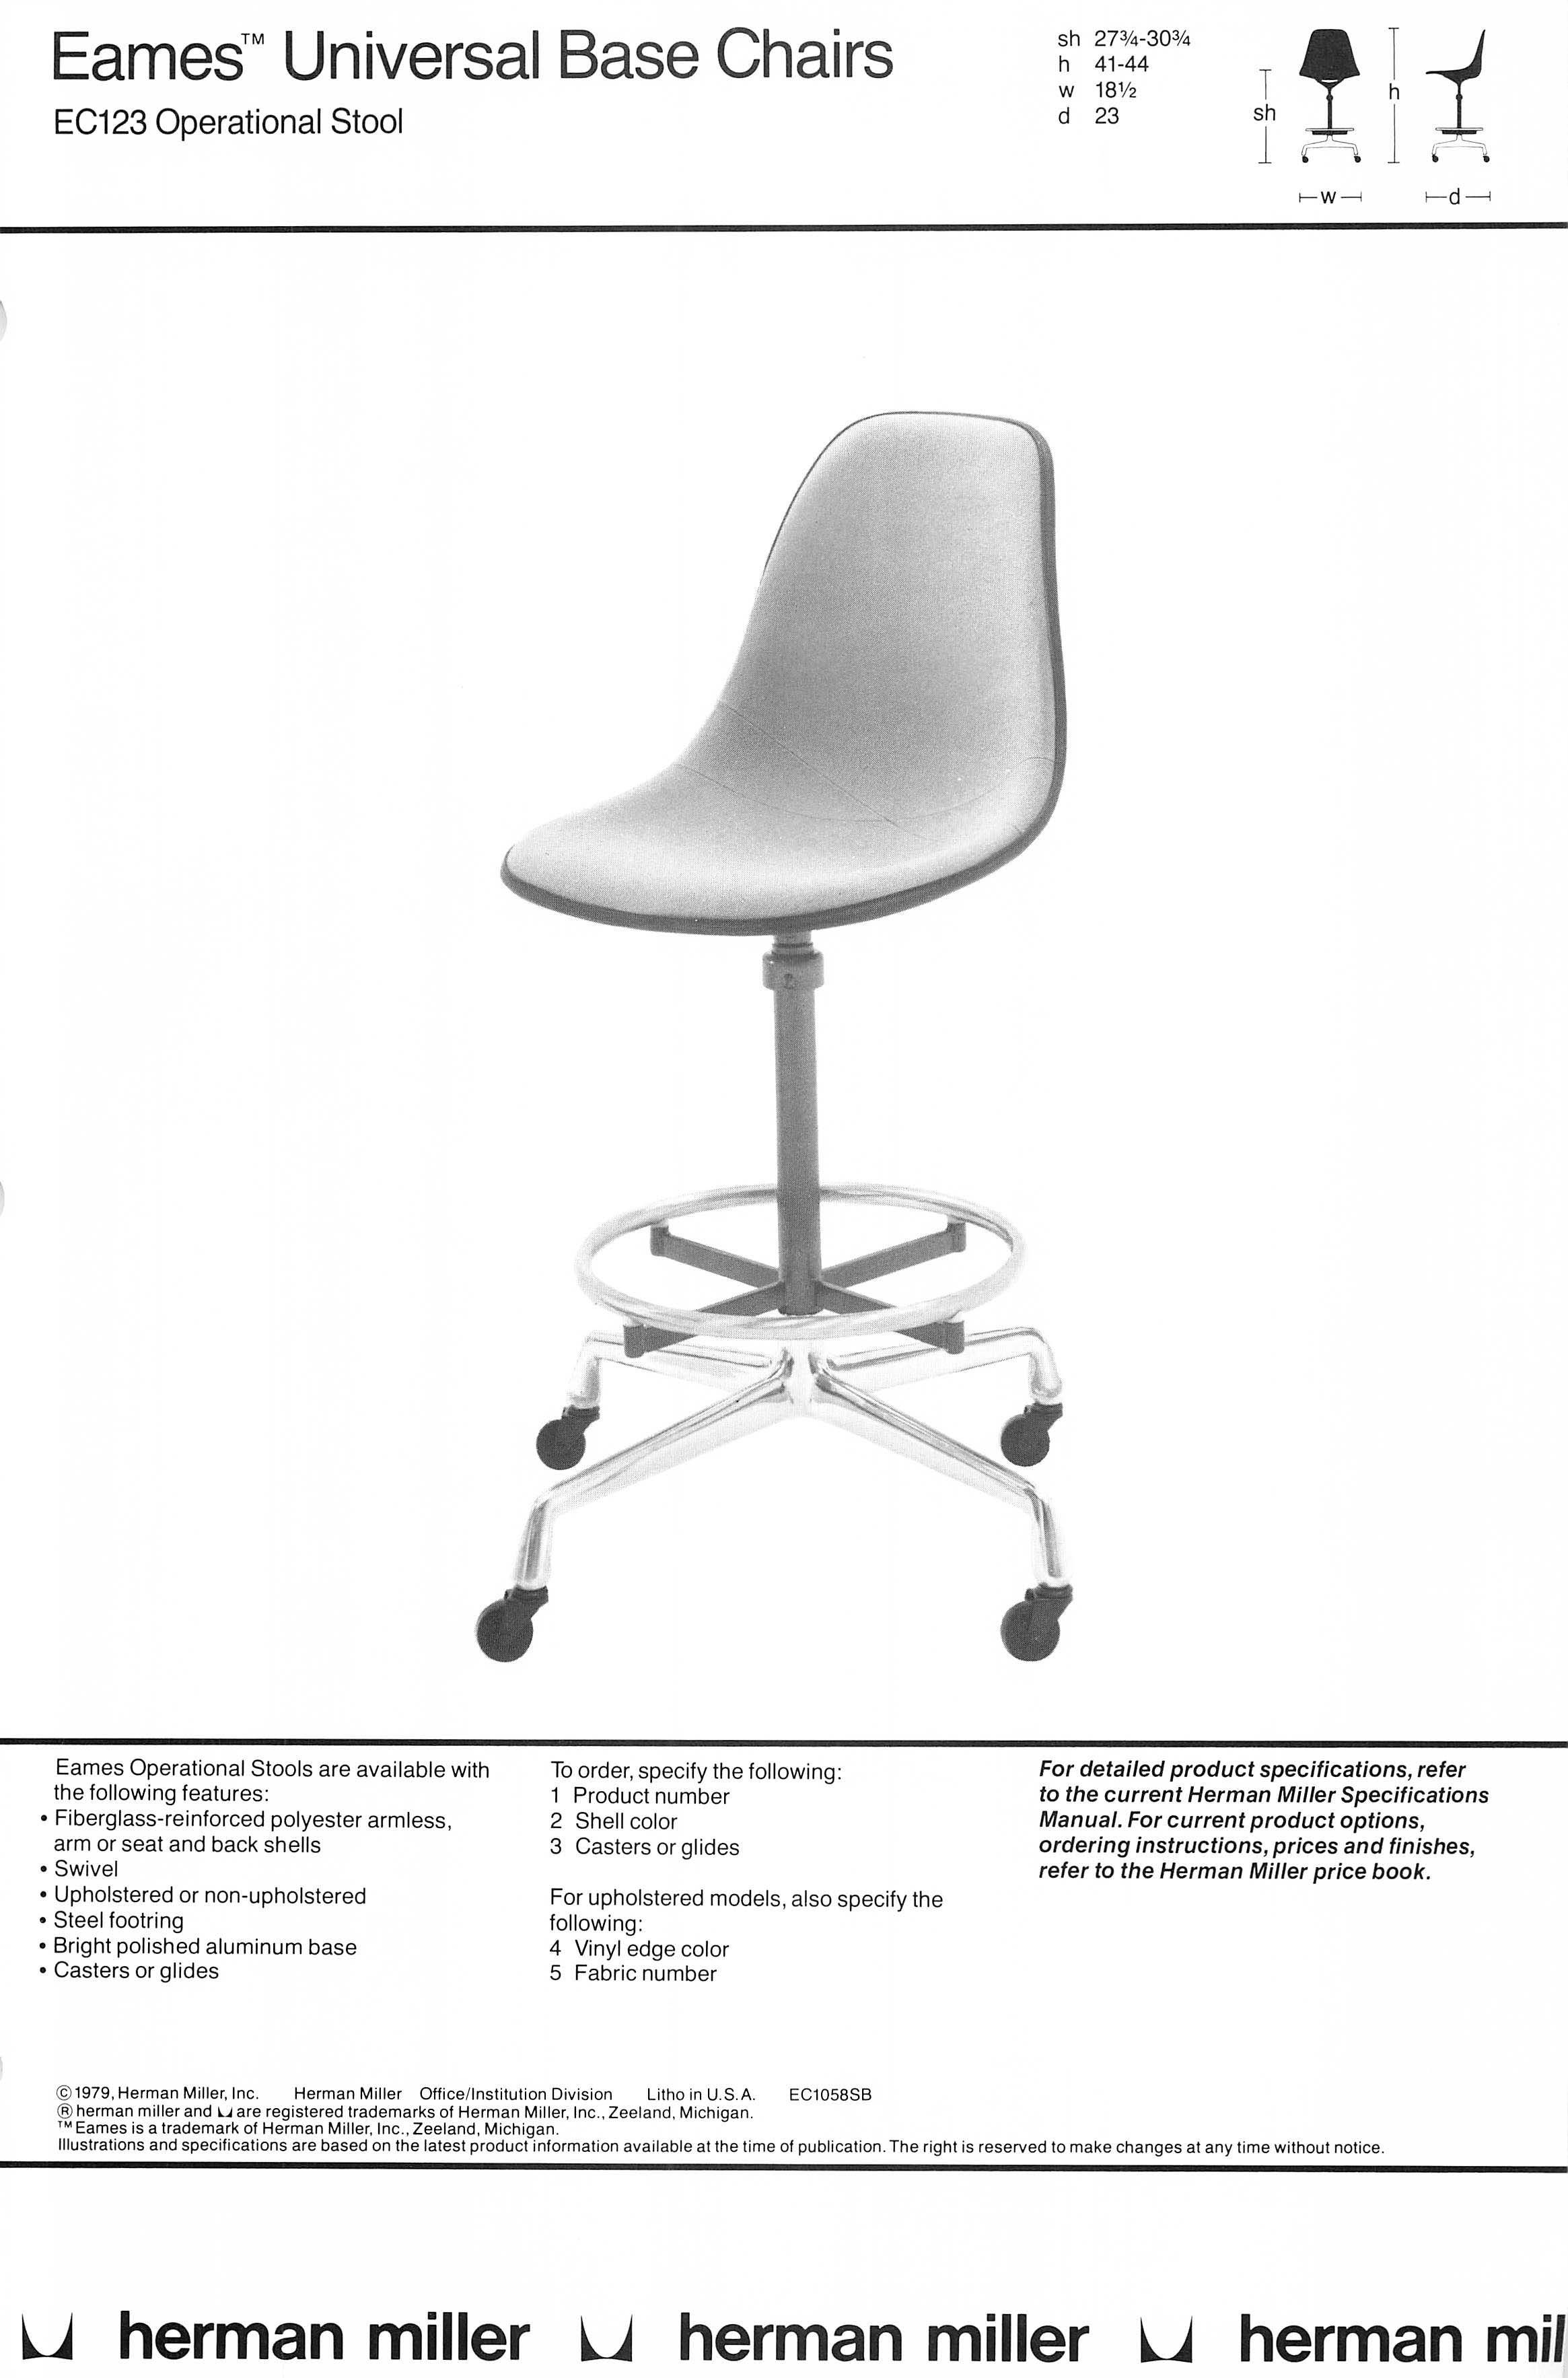 swivel chair operations cover rentals memphis eames operational stool in a 1979 hermanmiller catalog vintage